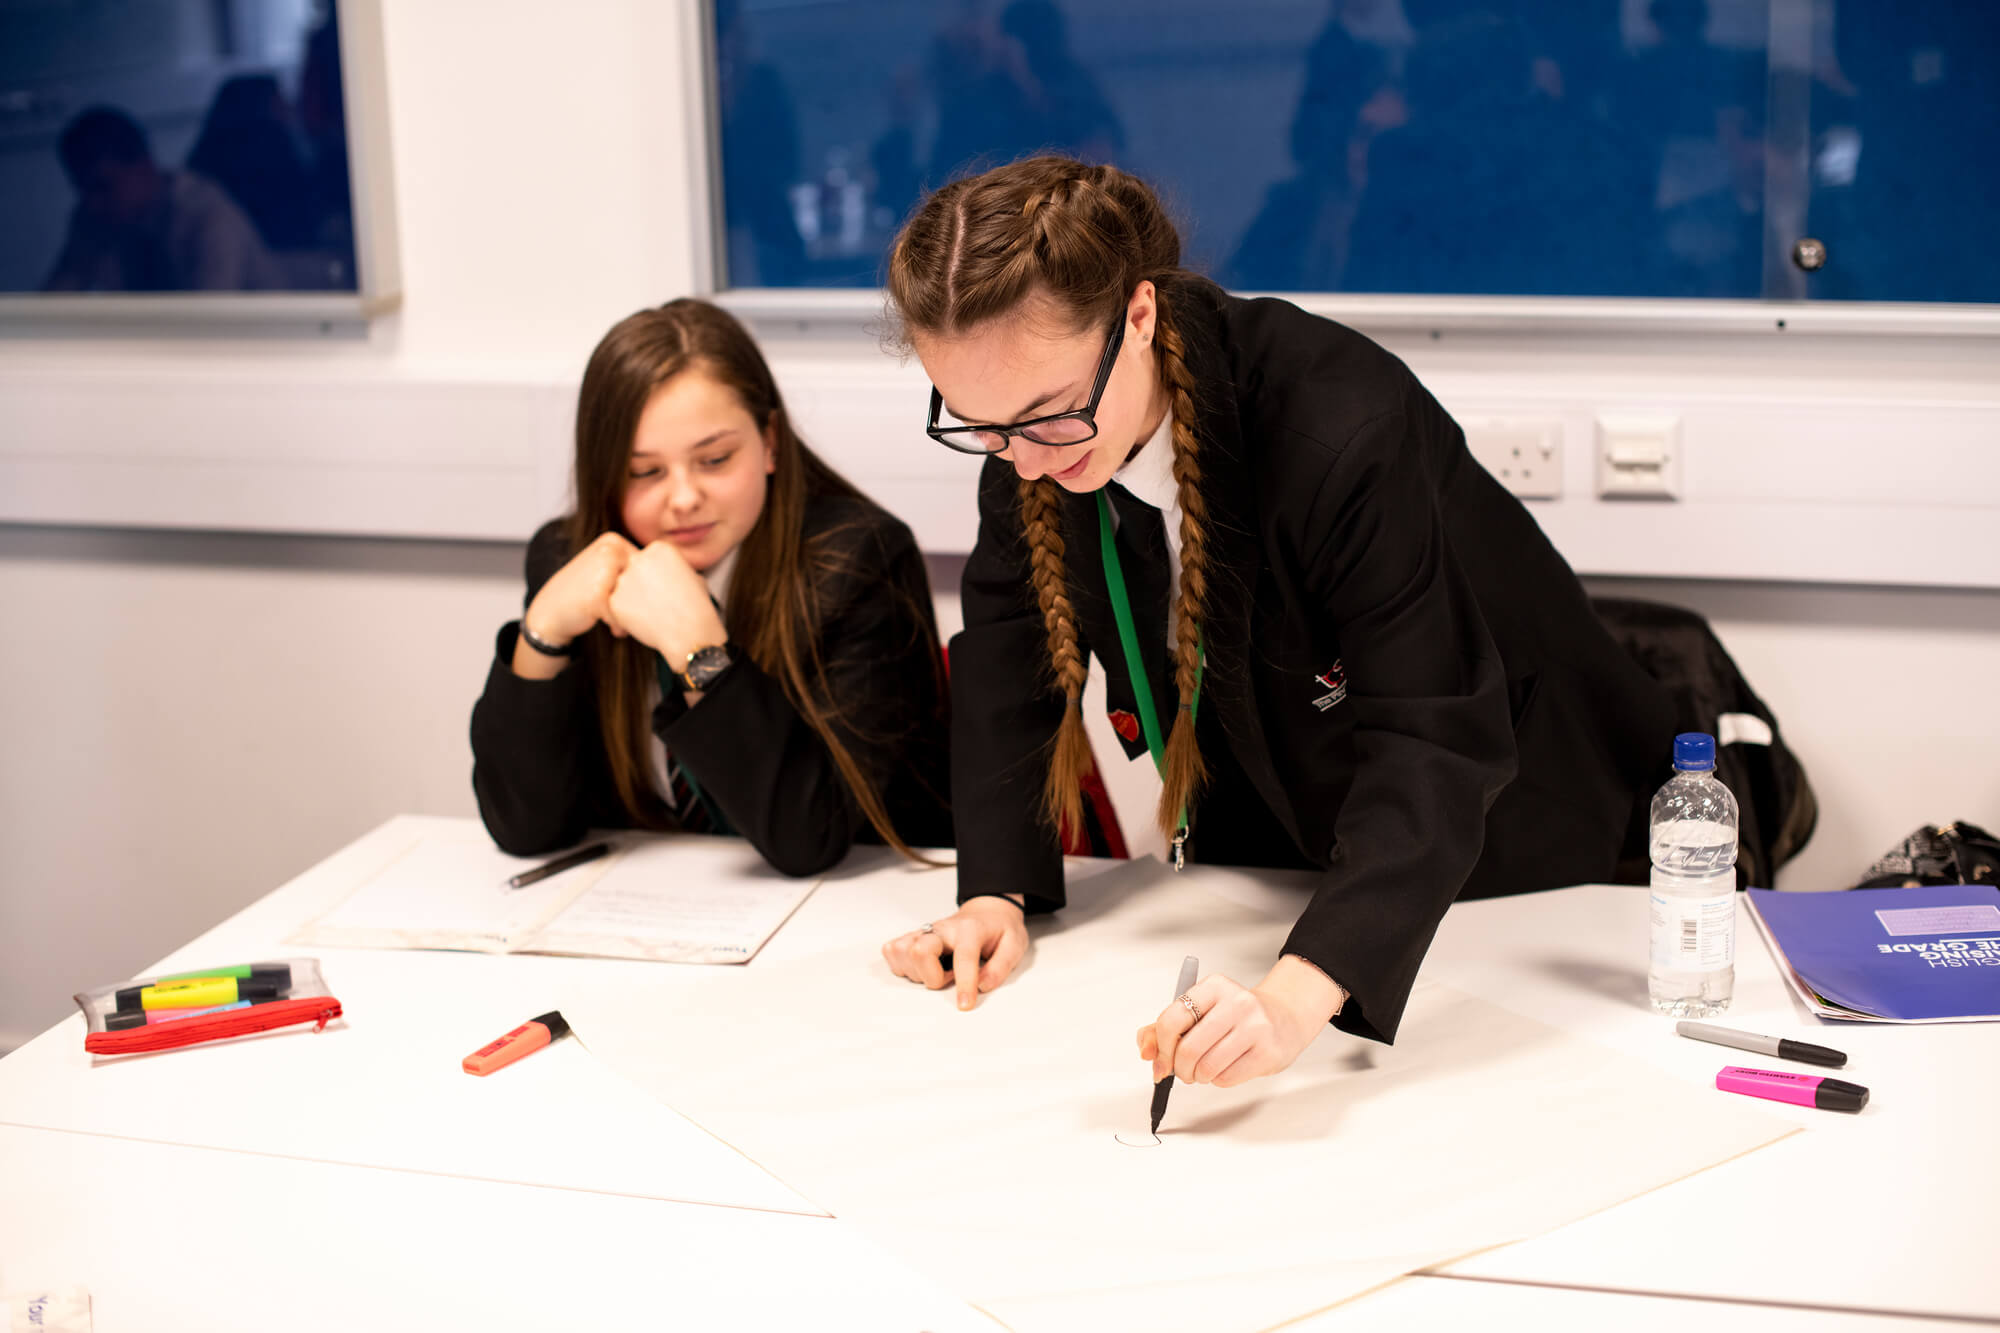 Two students working on an activity at a table with one student writing.